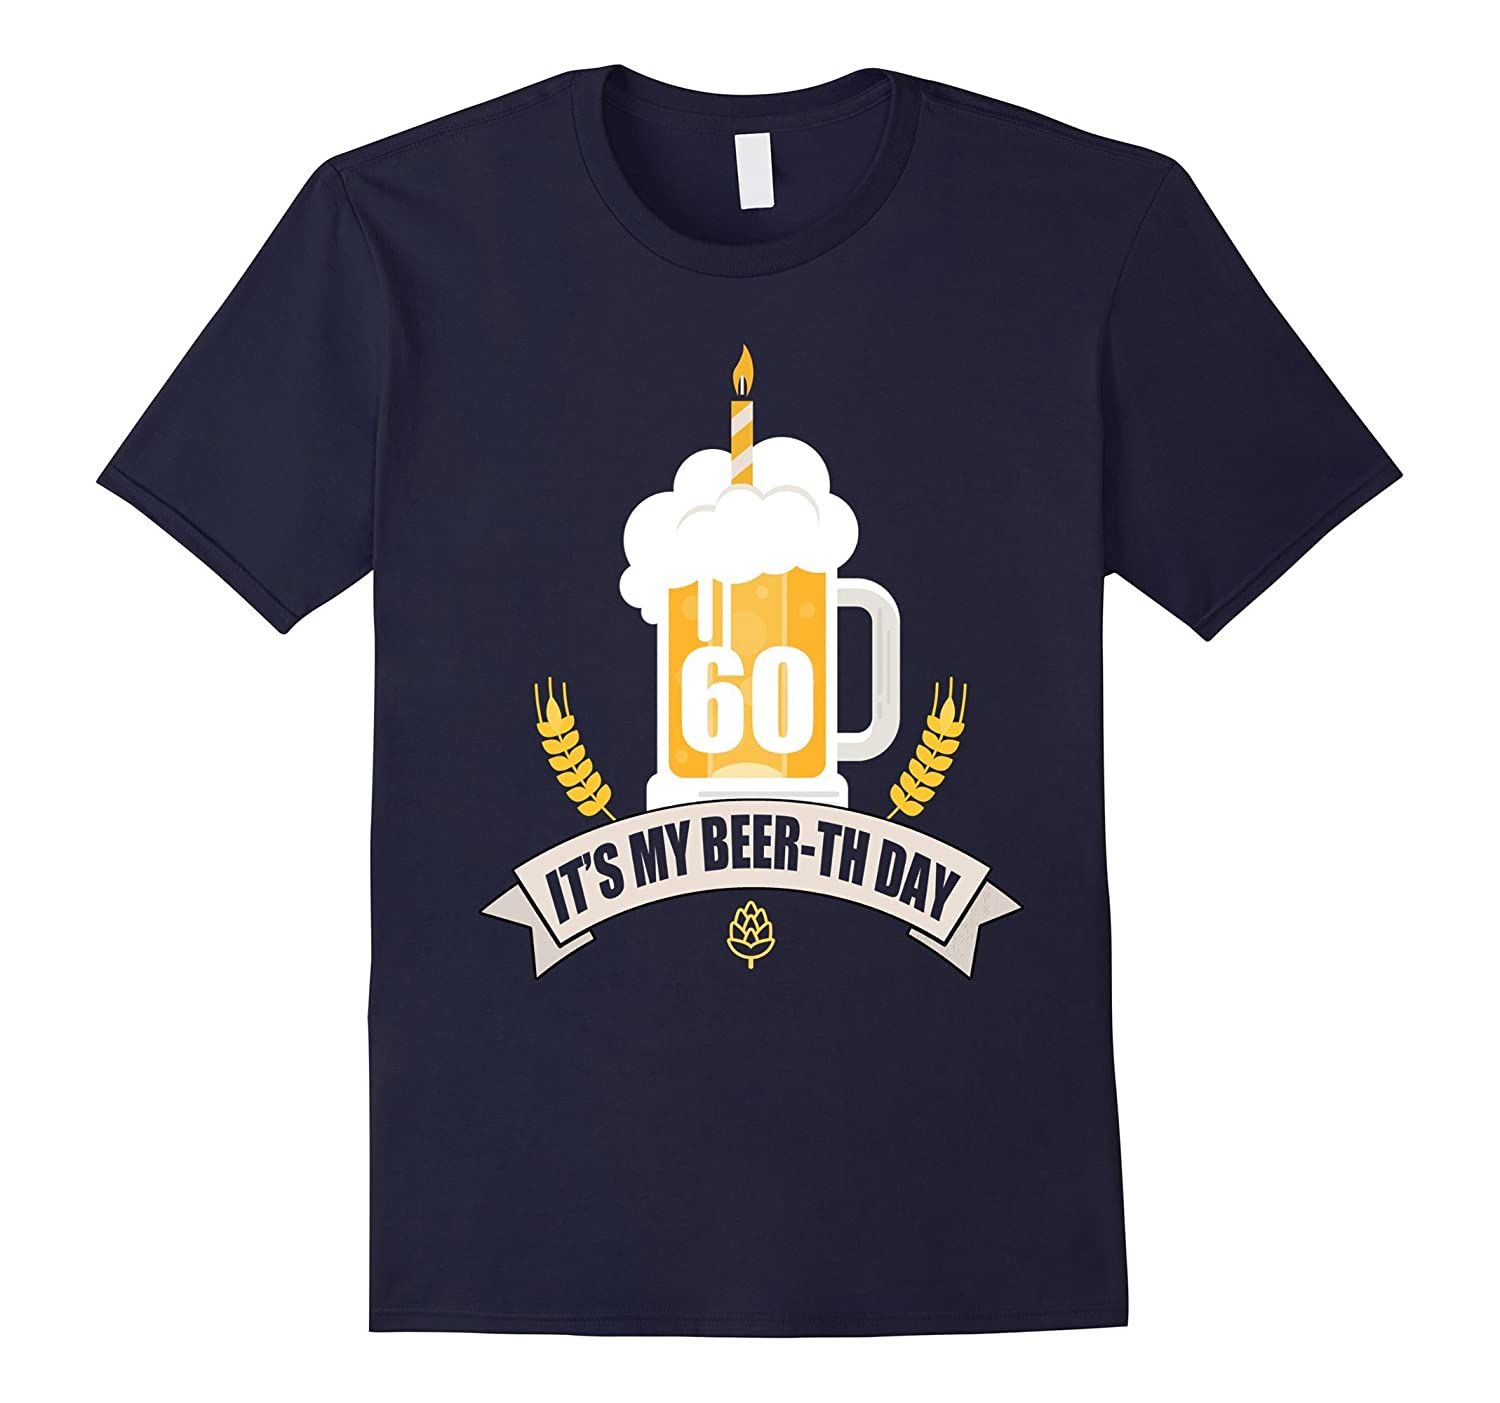 60th Birthday T-Shirt Its my Beer-th Day Funny Beer Shirt-Art